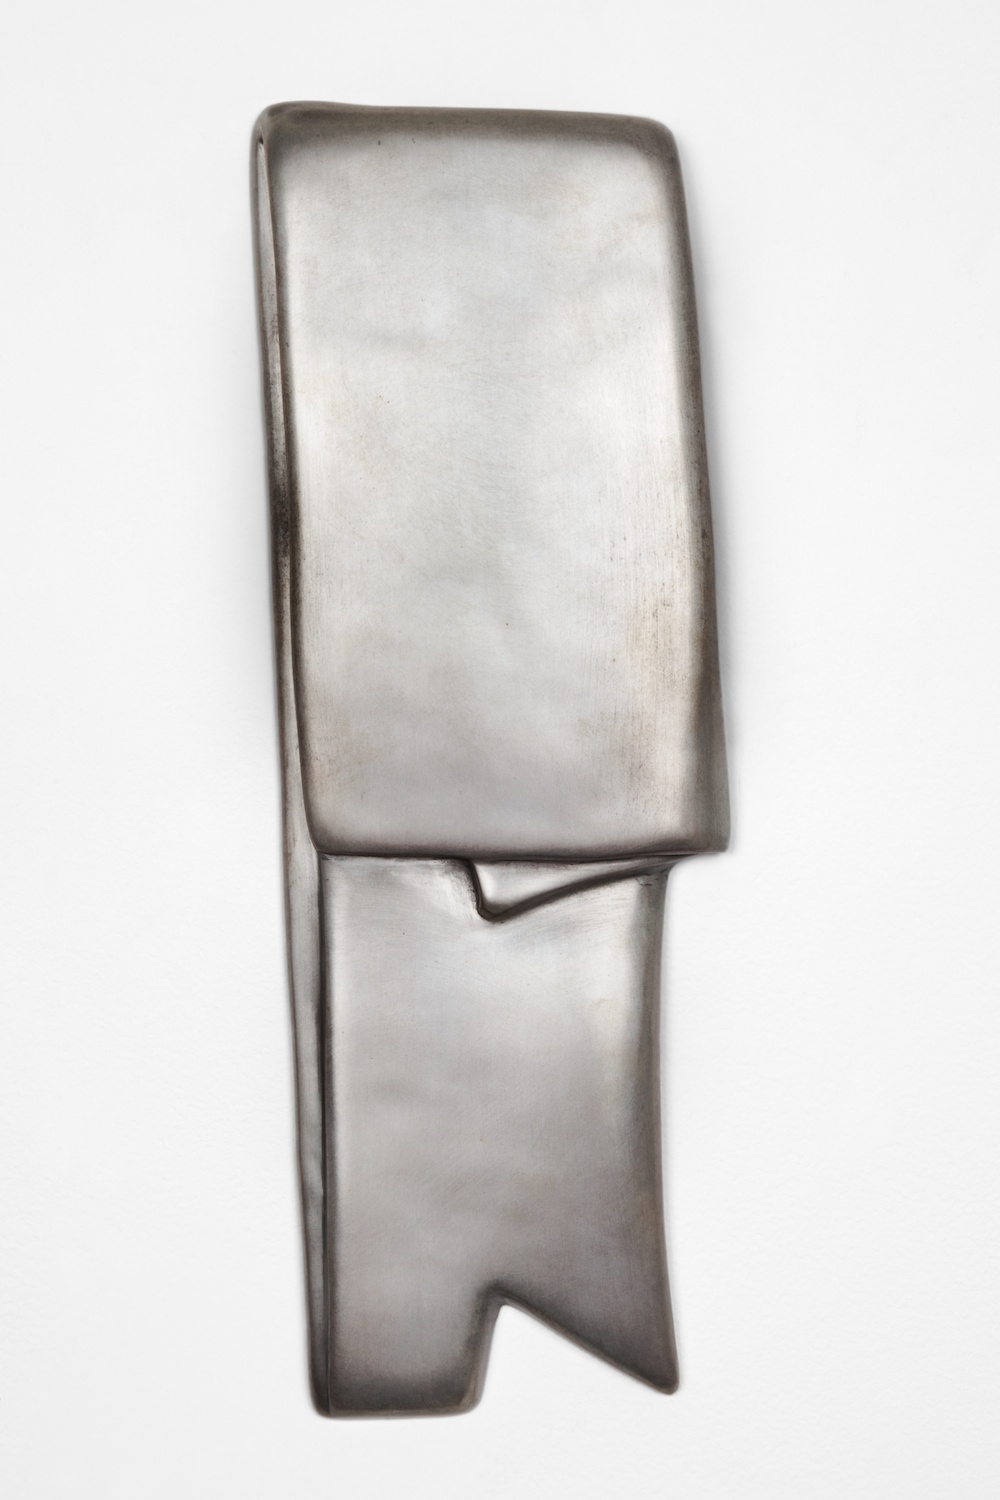 "Anthony Pearson Untitled (Tablet) 2012 Bronze relief with silver nitrate patina 15"" x 6"" AP320"